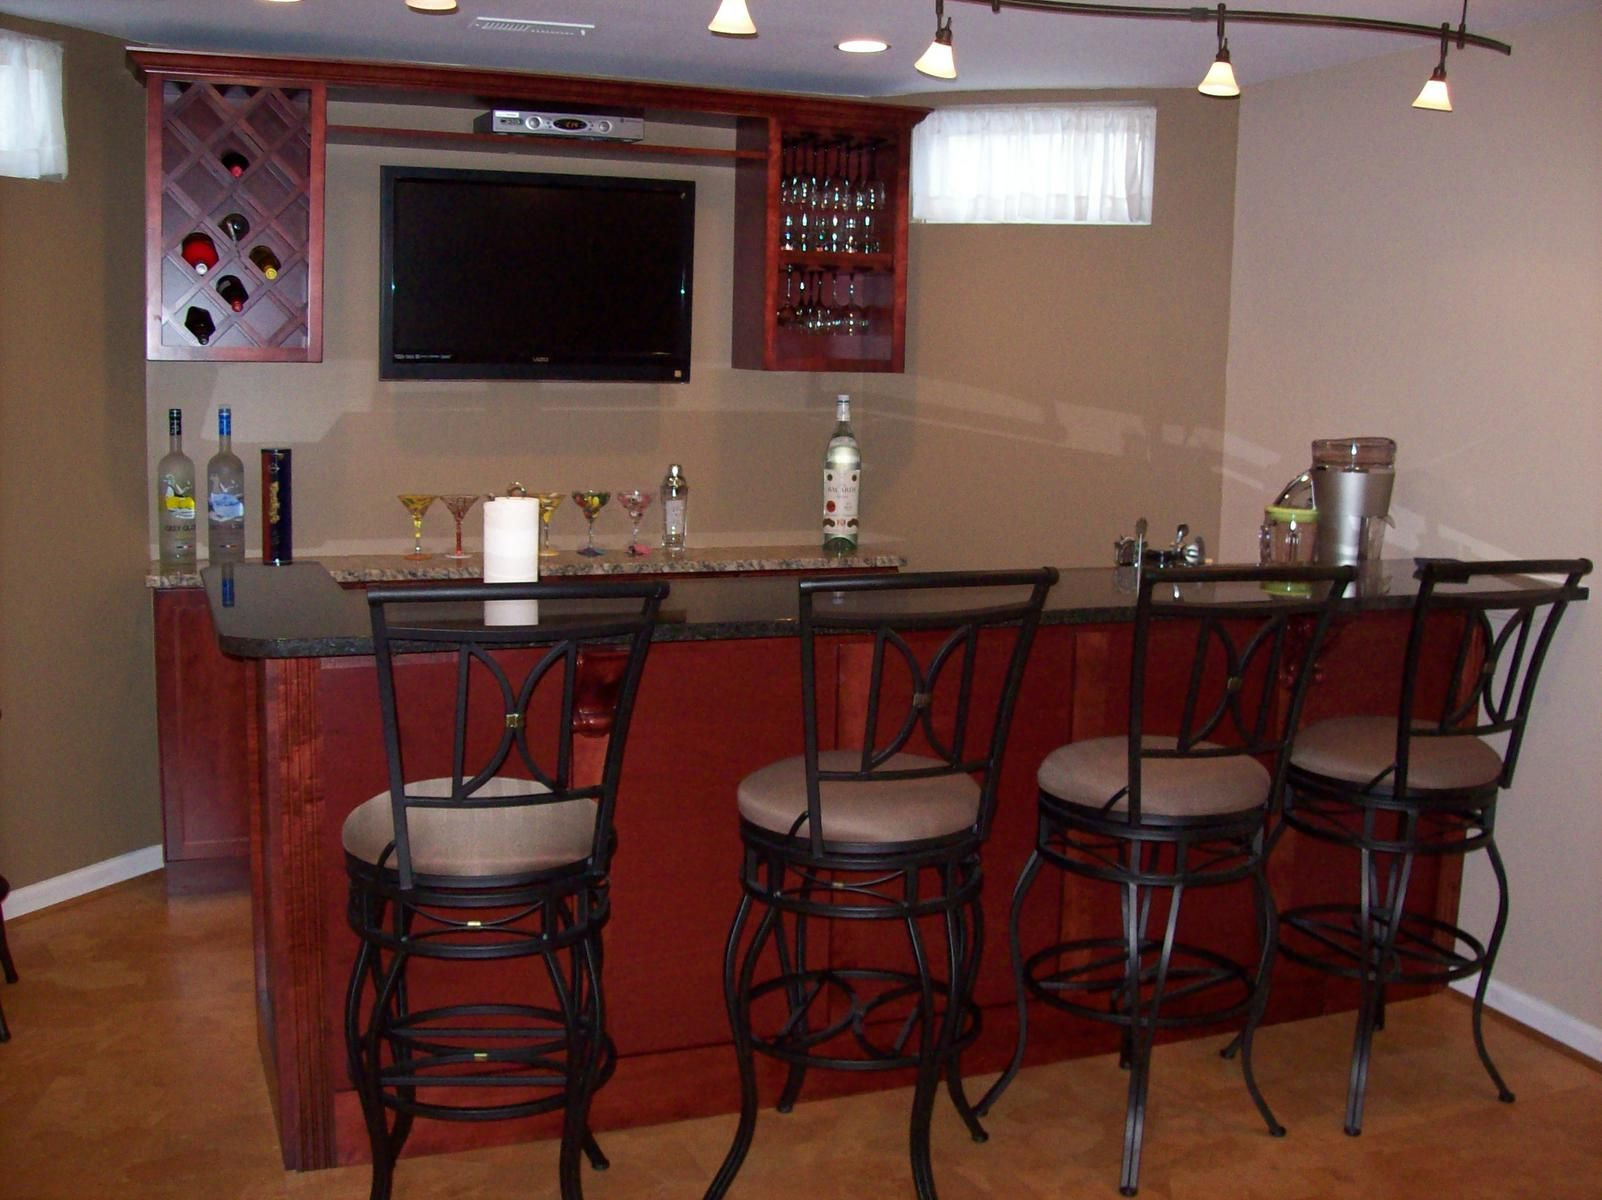 Hand crafted basement bar by sdg home solutions - Home bar room ideas ...